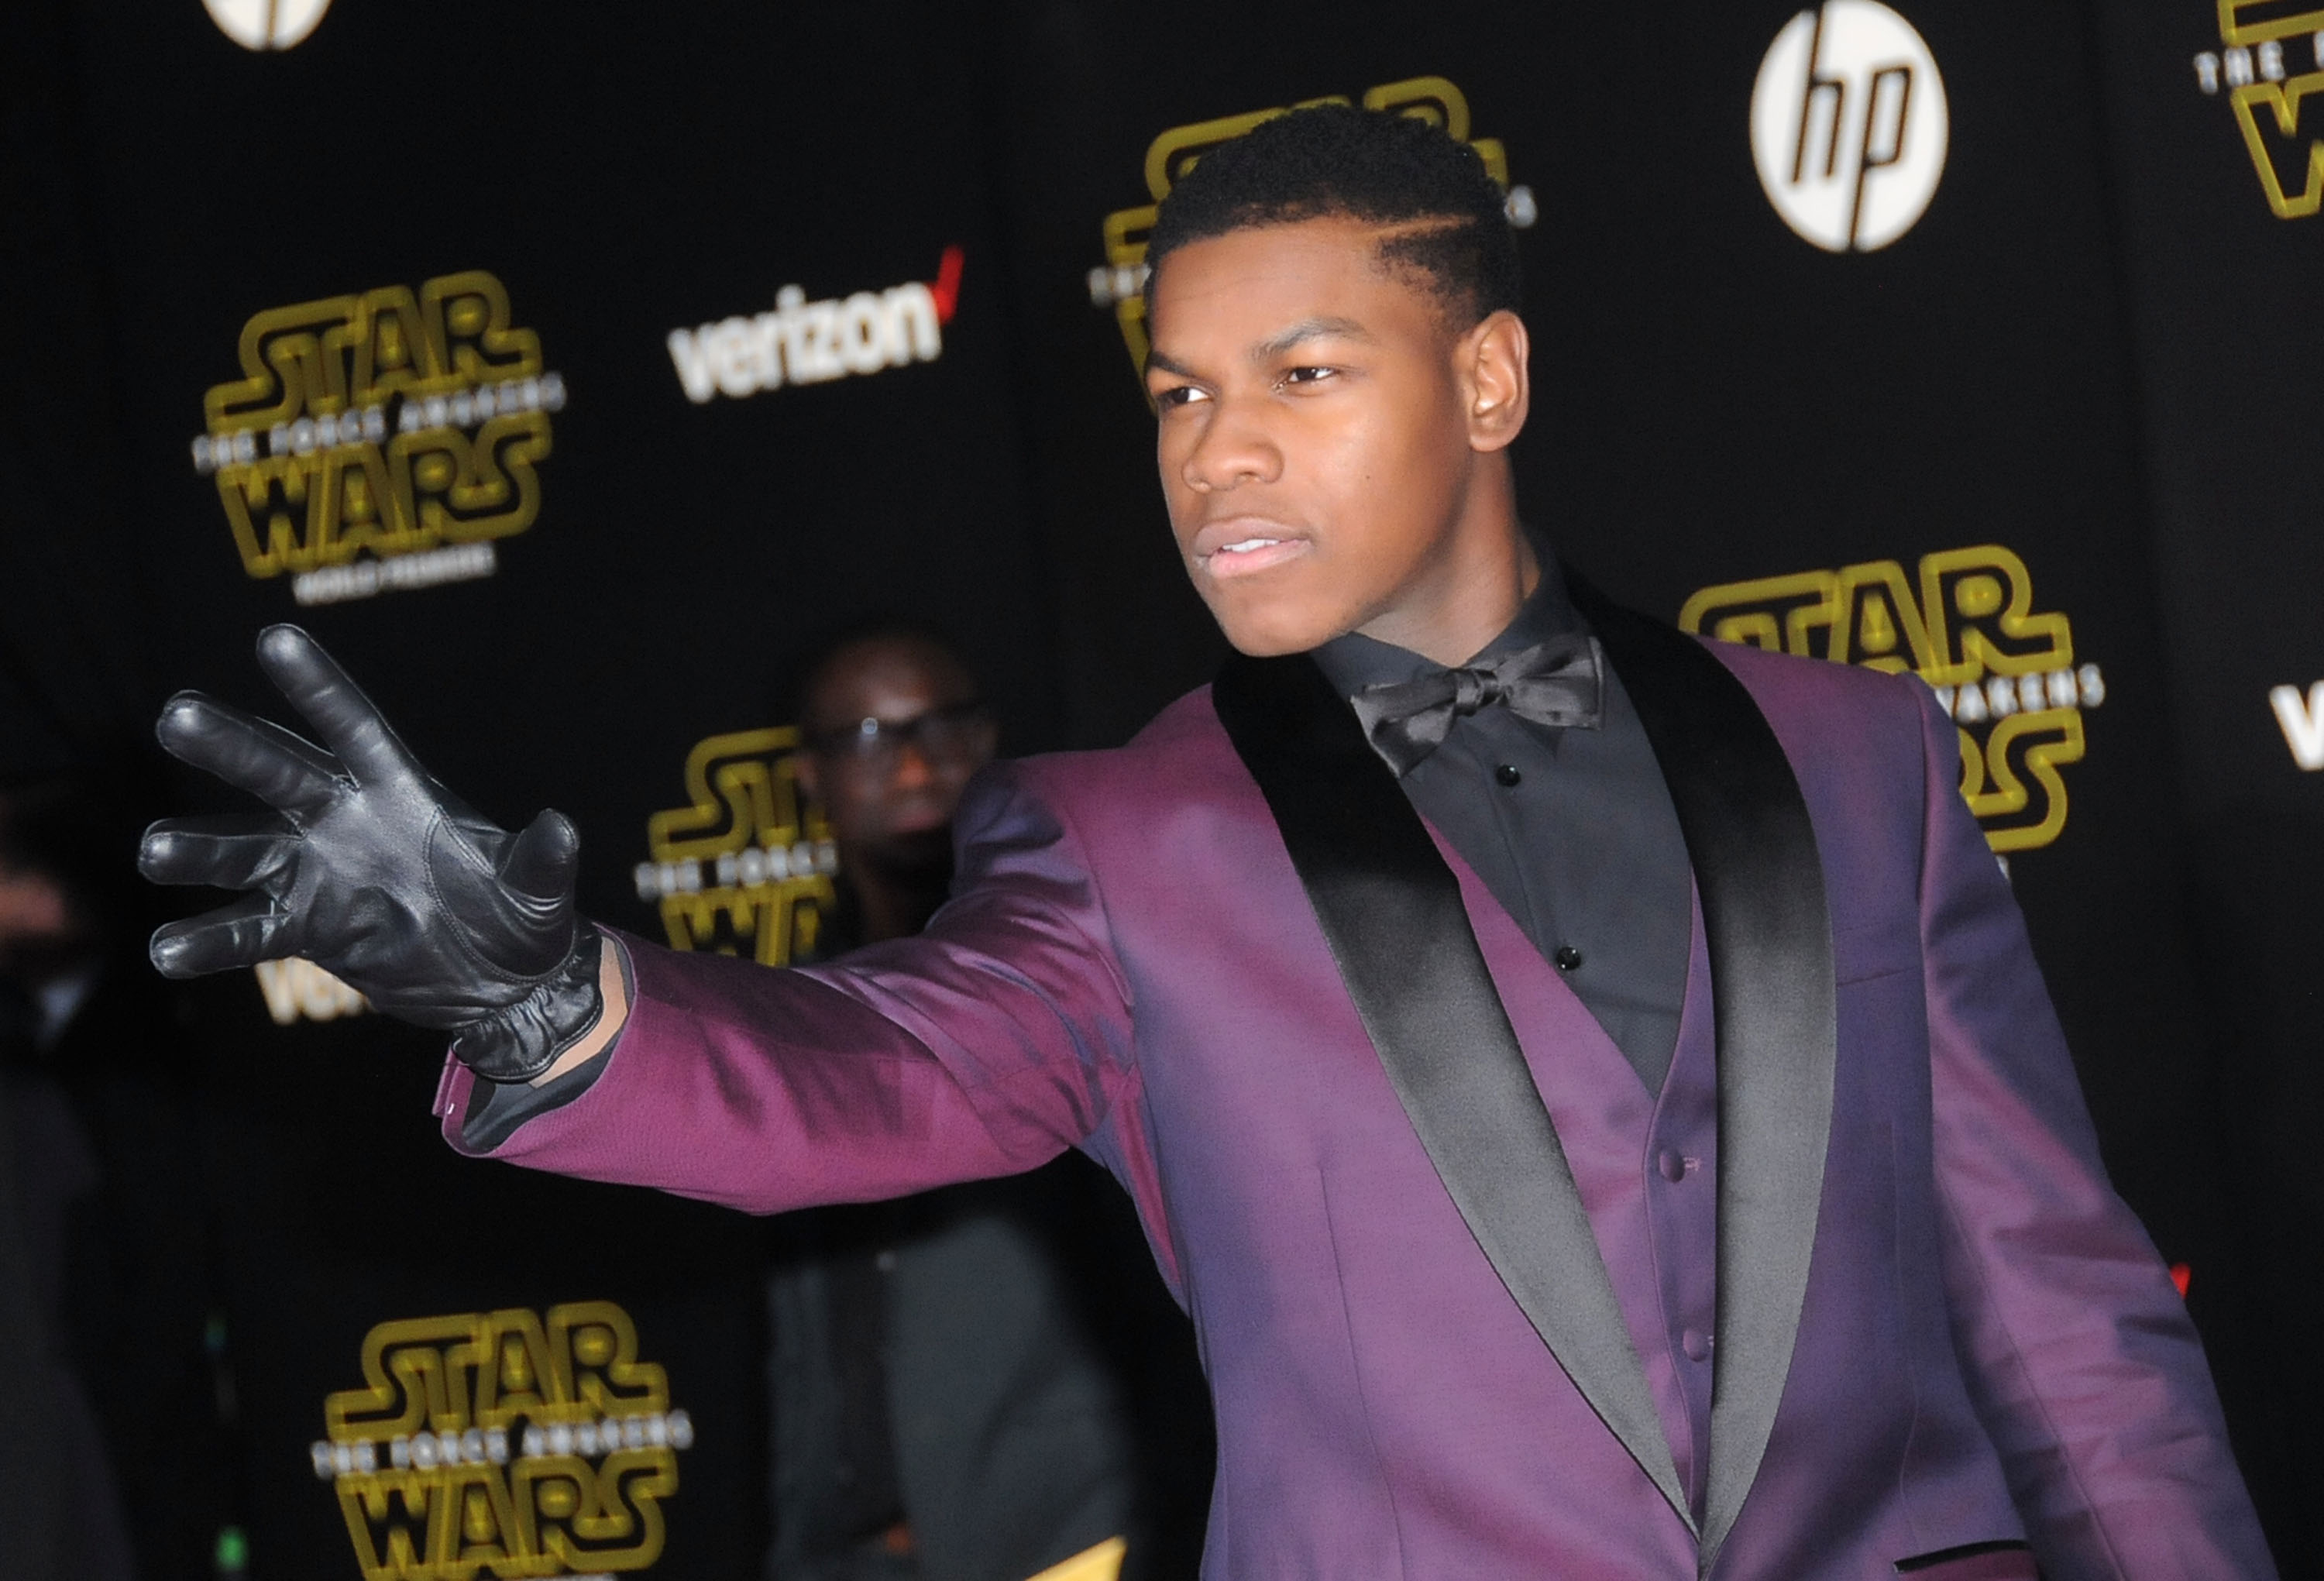 attends the Premiere of Walt Disney Pictures and Lucasfilm's 'Star Wars: The Force Awakens' on December 14, 2015 in Hollywood, California.